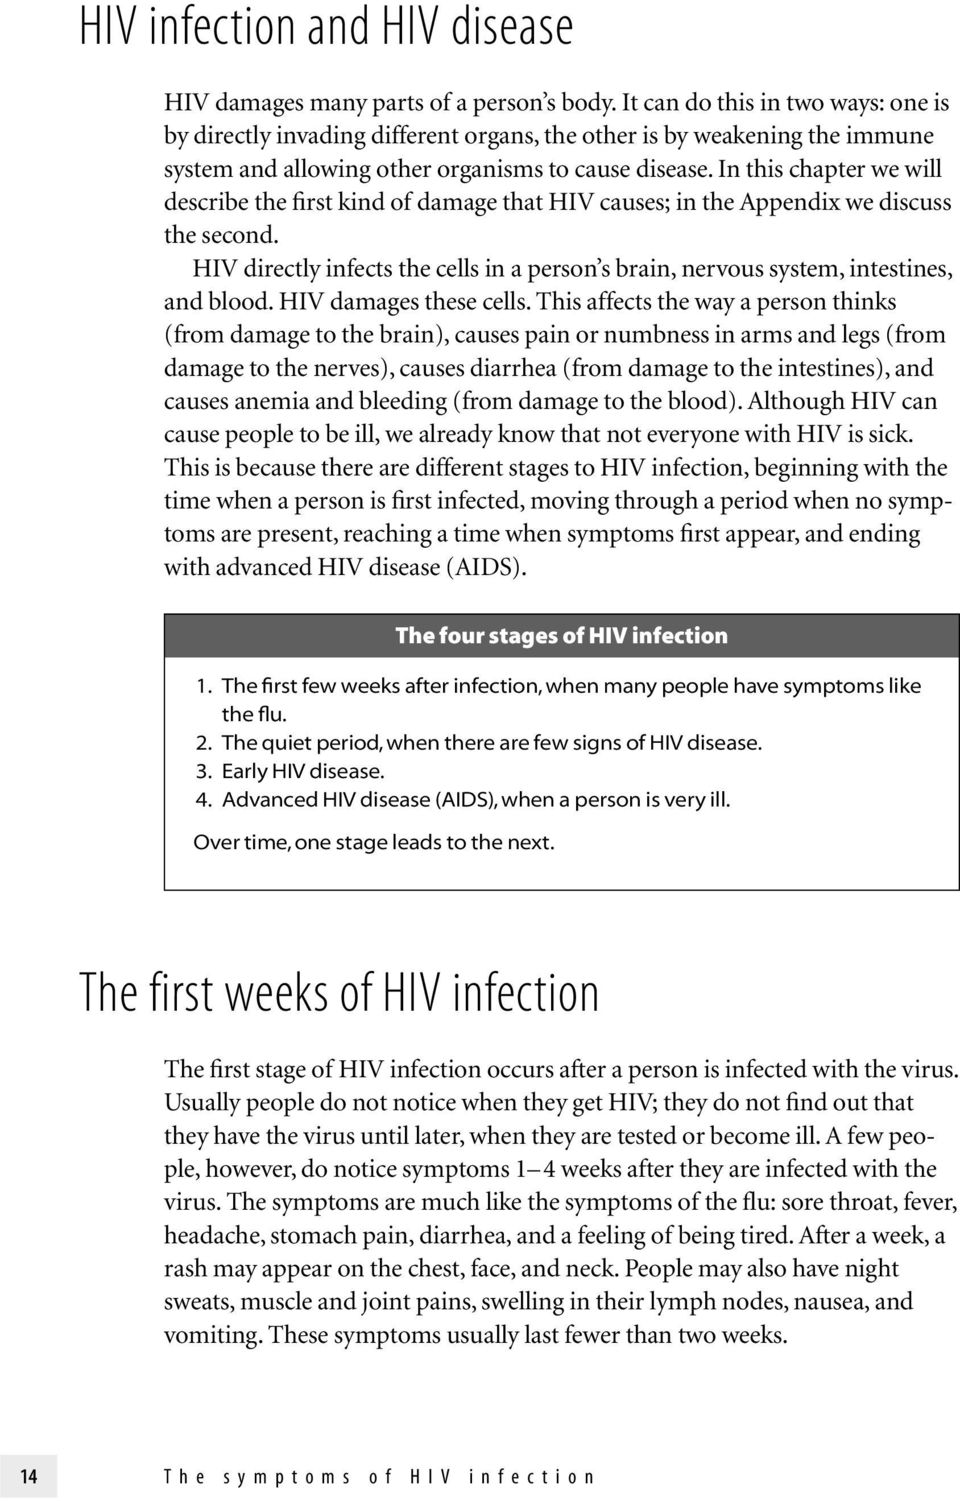 In this chapter we will describe the first kind of damage that HIV causes; in the Appendix we discuss the second.